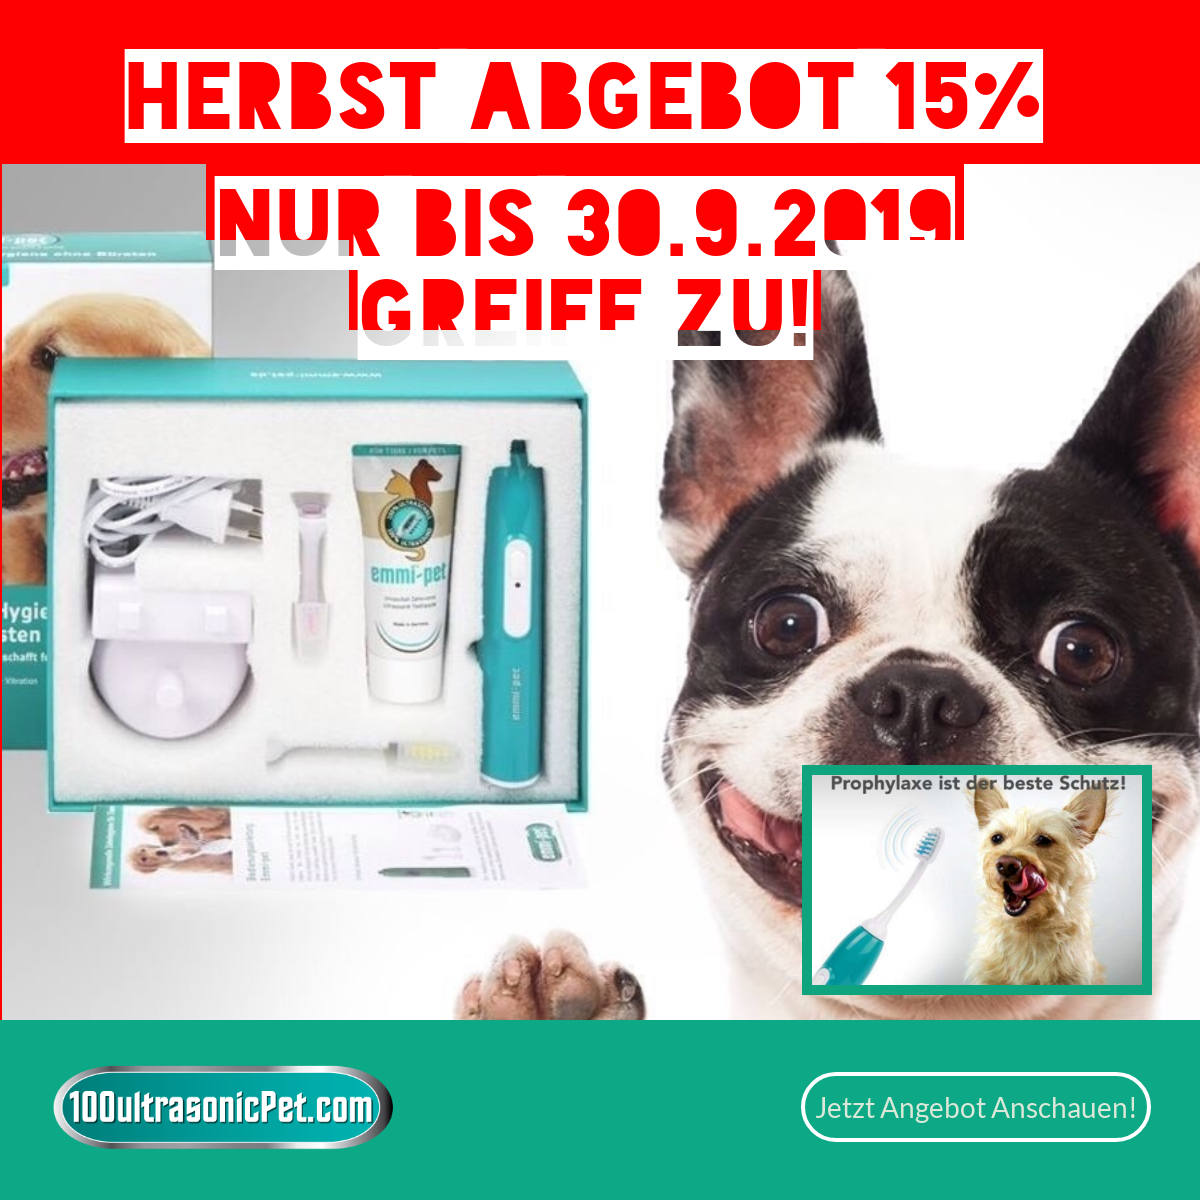 HerbstsAngebot Emmi-pet